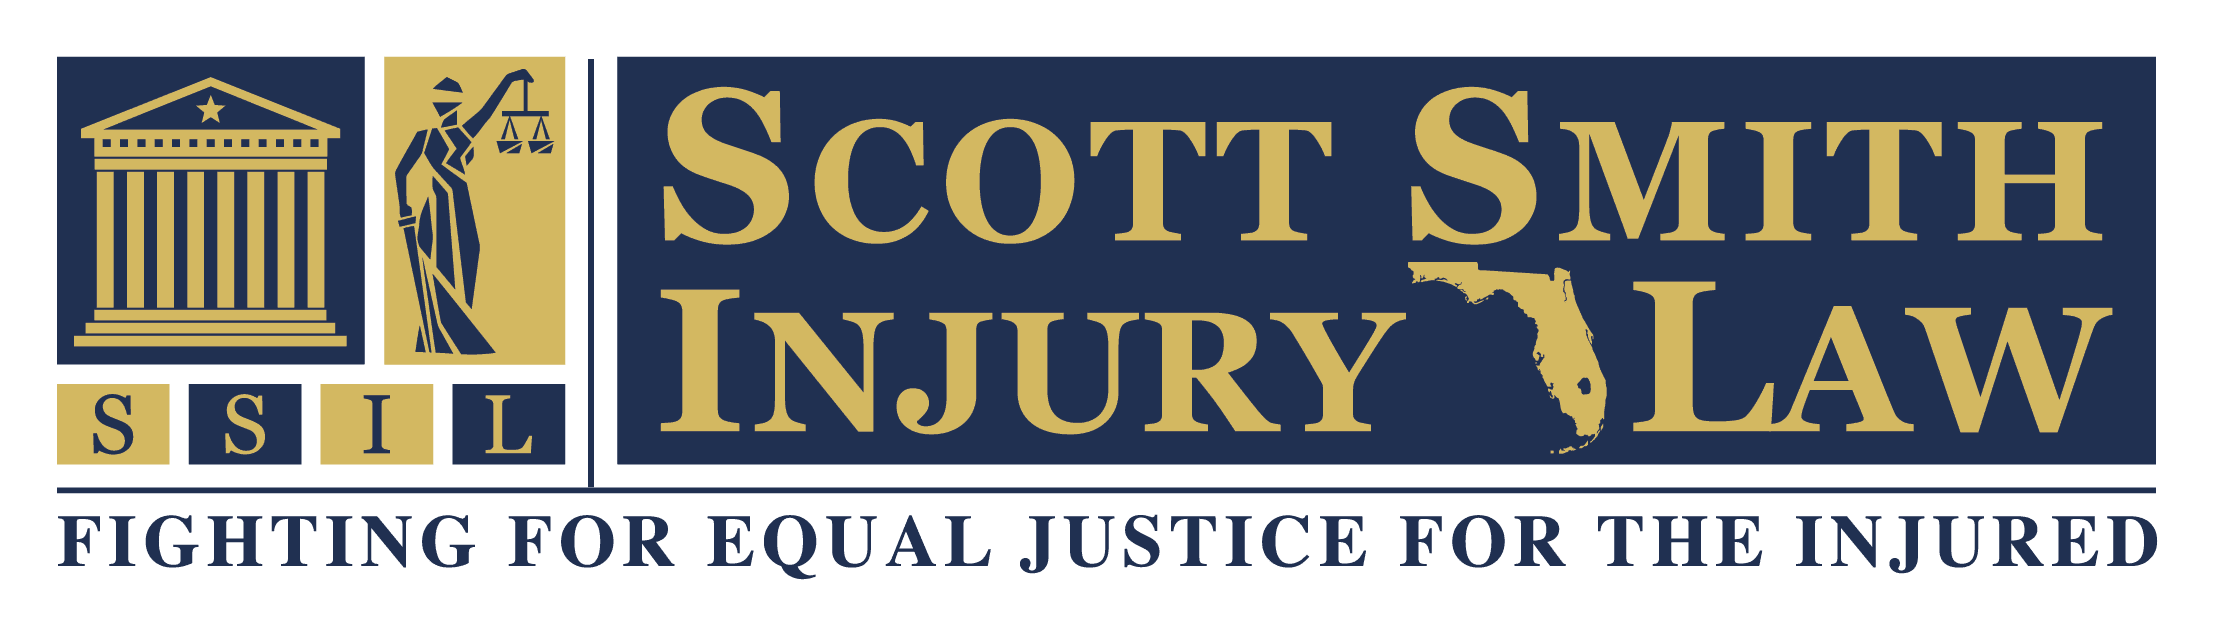 Scott Smith Injury Law